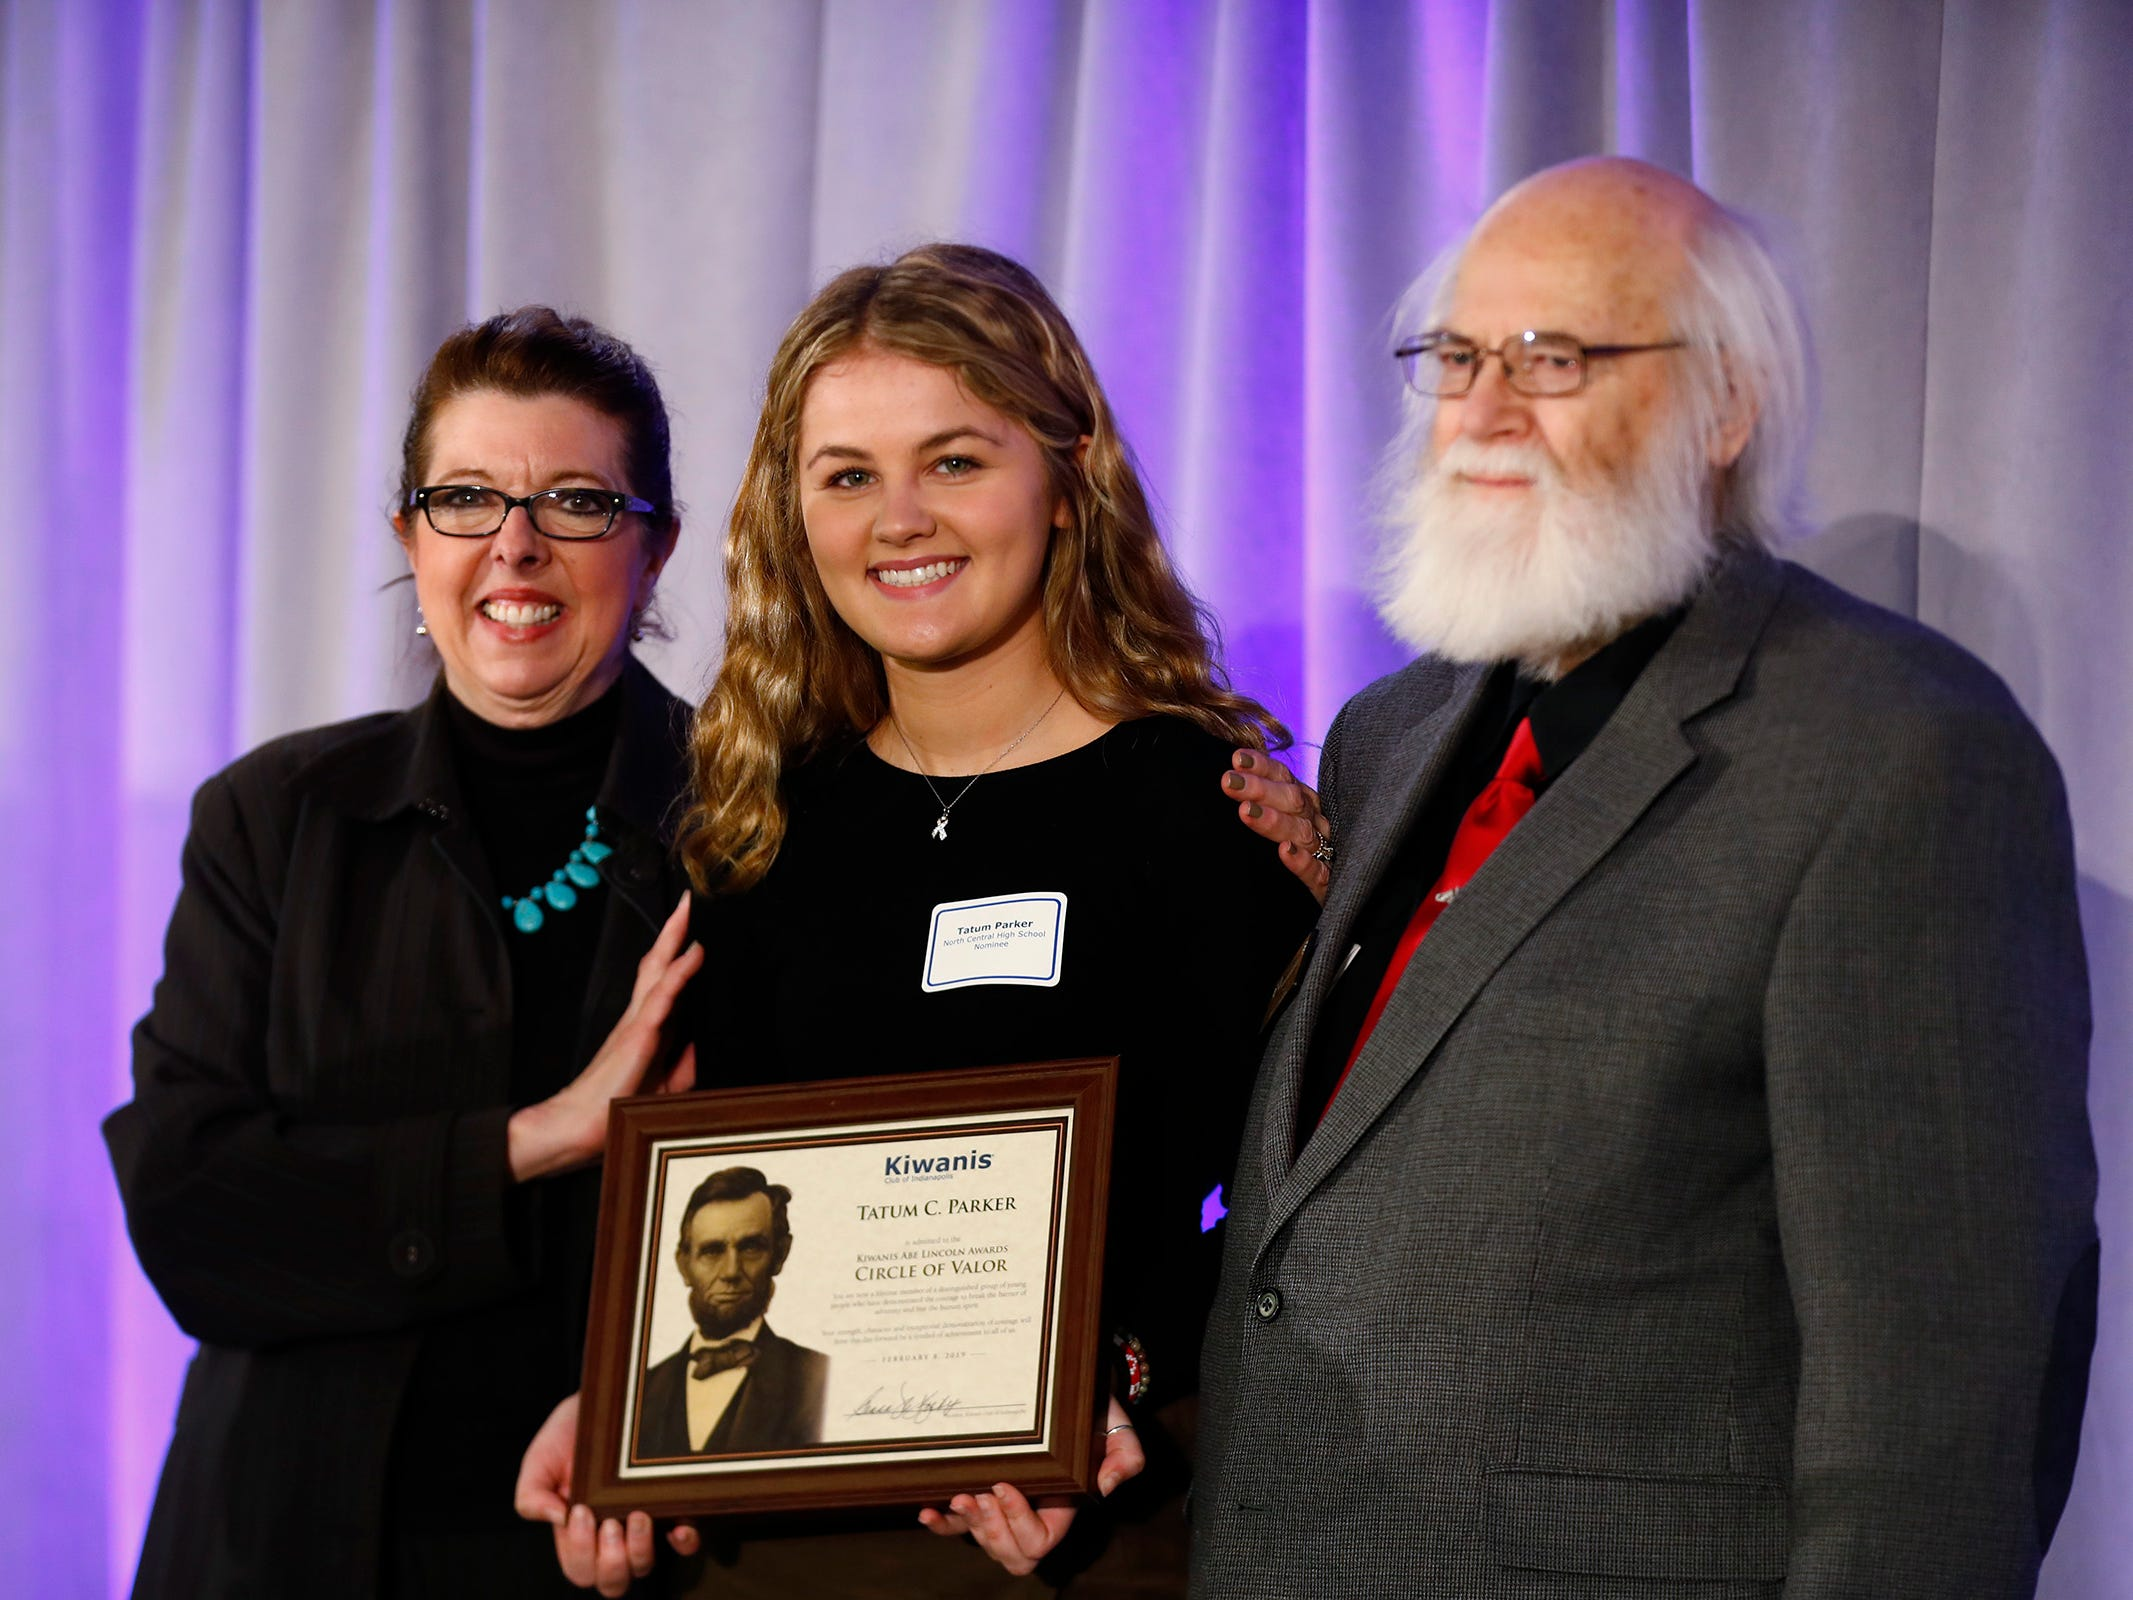 North Central High School student, Tatum Parker, center, is honored with a Circle of Valor award at the 44th Annual Abe Lincoln Awards Program, Friday, Feb. 8, 2019. The Kiwanis Club of Indianapolis program was held at Ivy Tech Community College.  20 high school student were honored at the annual event which celebrates overcoming adversity in life to succeed.